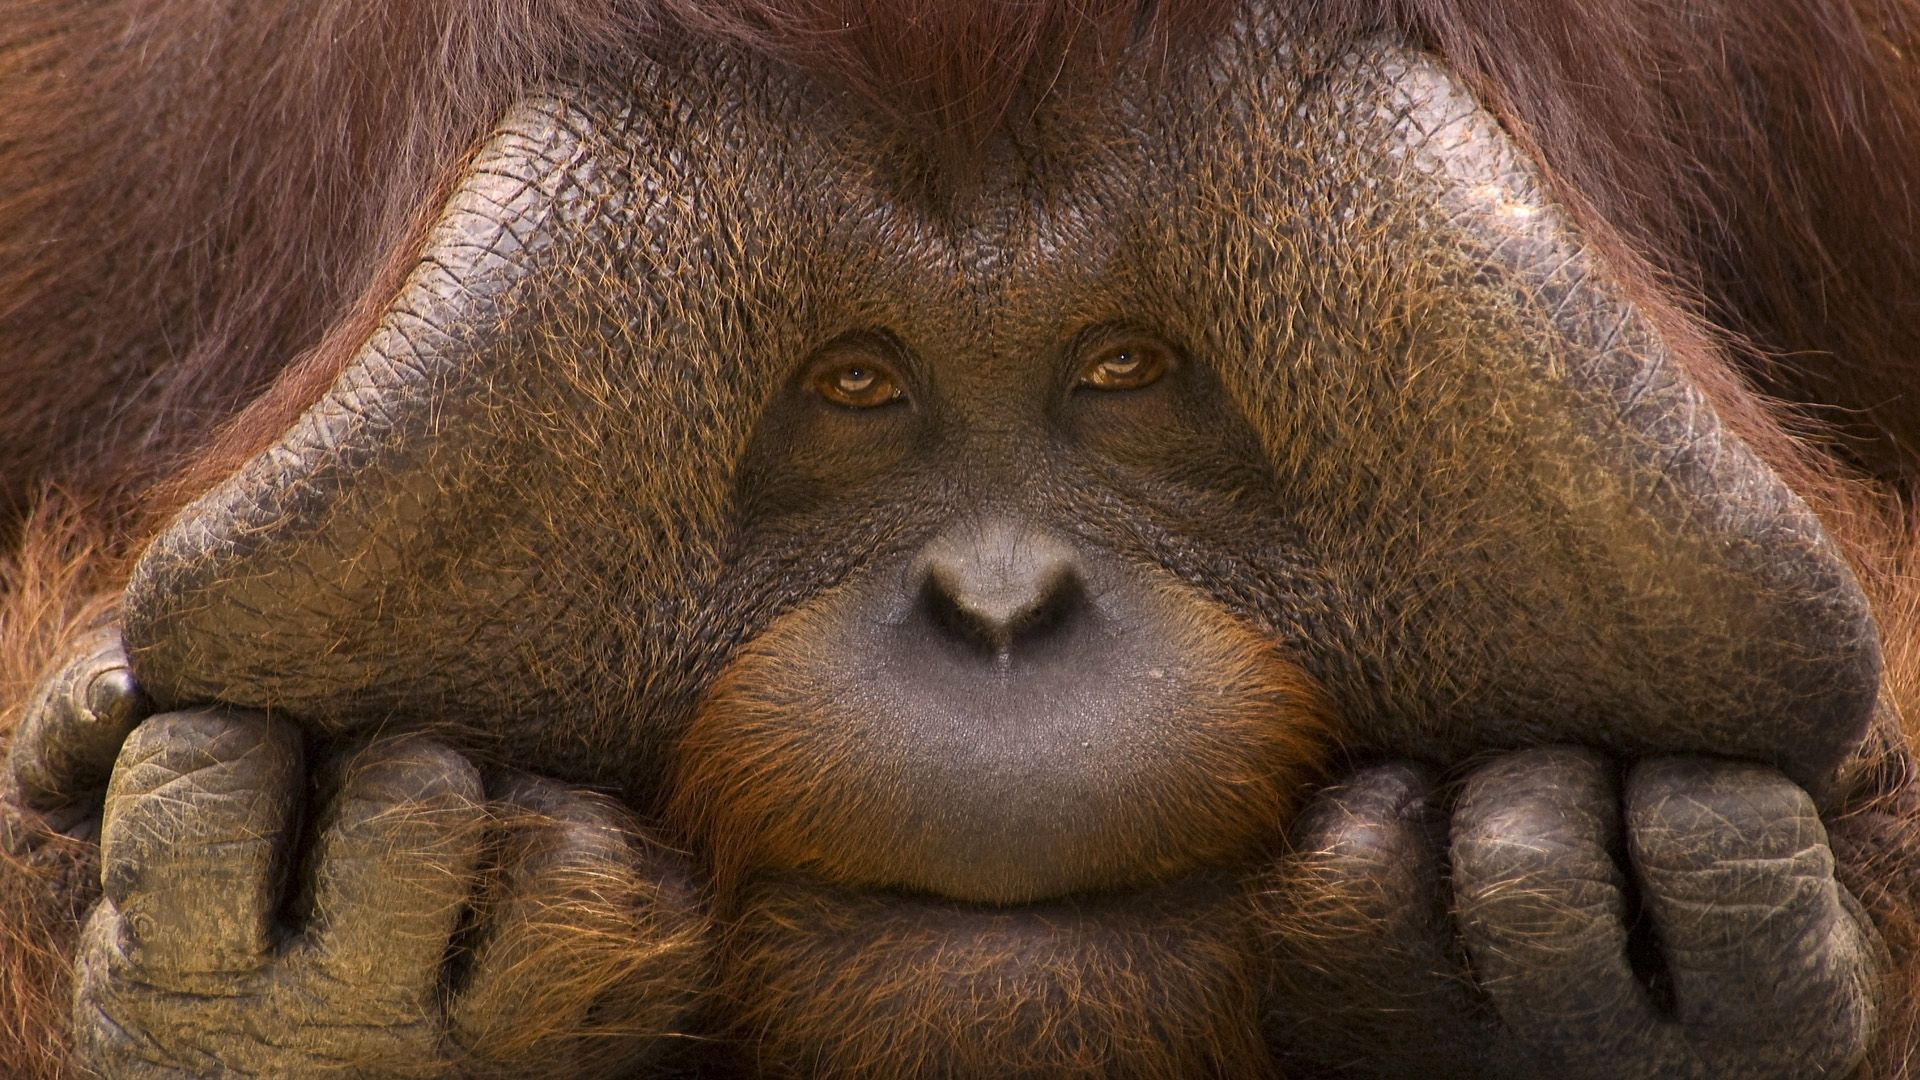 154299 download wallpaper Animals, Monkey, Muzzle, Hands, Wool screensavers and pictures for free